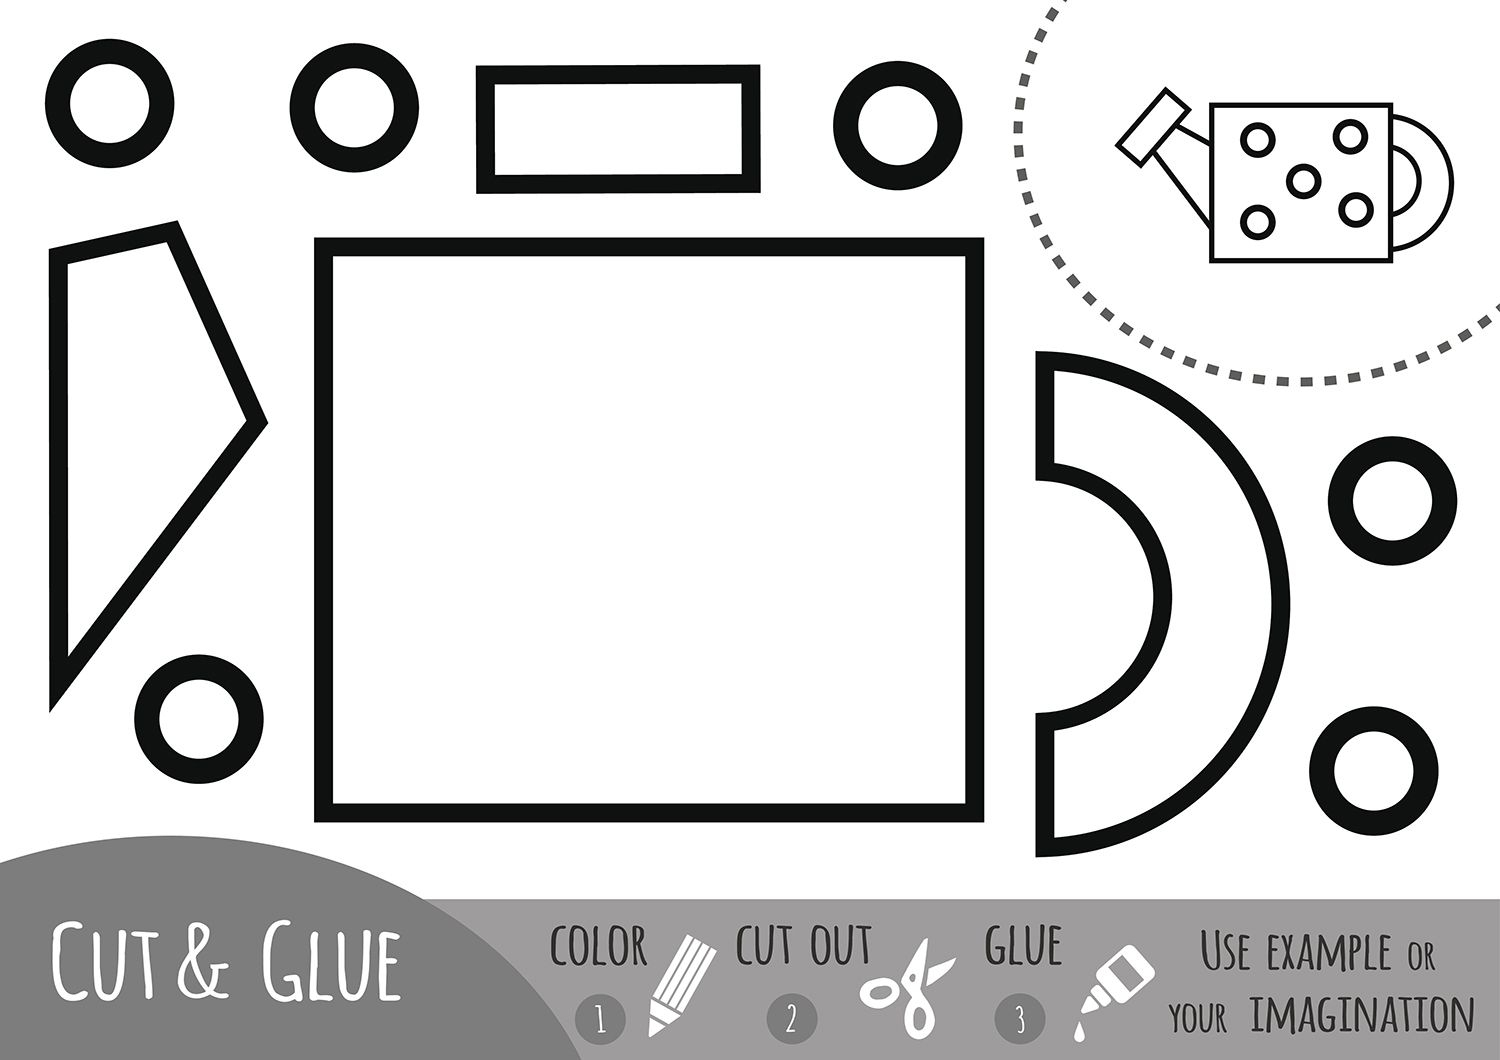 Free Printable Activities For Kids - Free Printable Activities For Kids